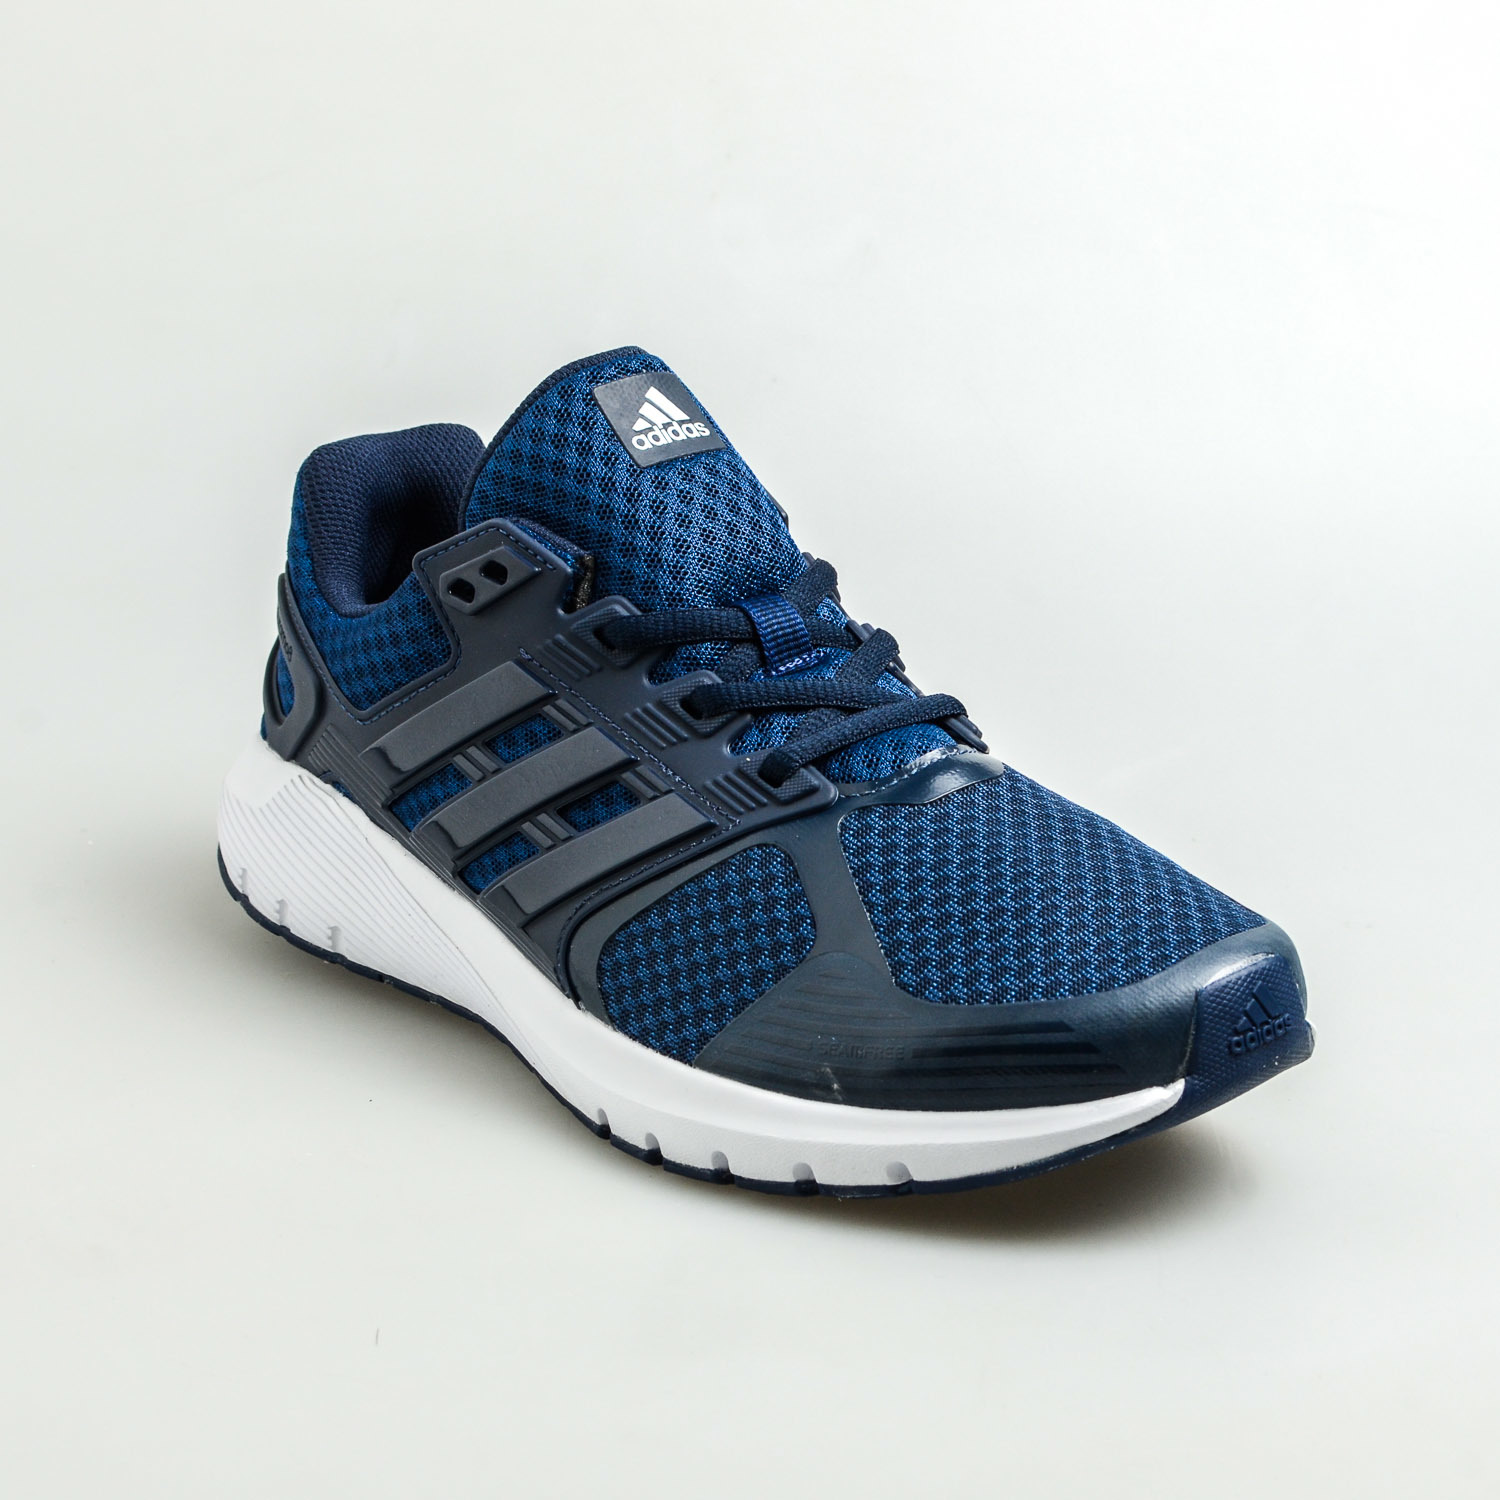 ADIDAS DURAMO 8 (BB4659) | For Sale Online at Takatack.com ...